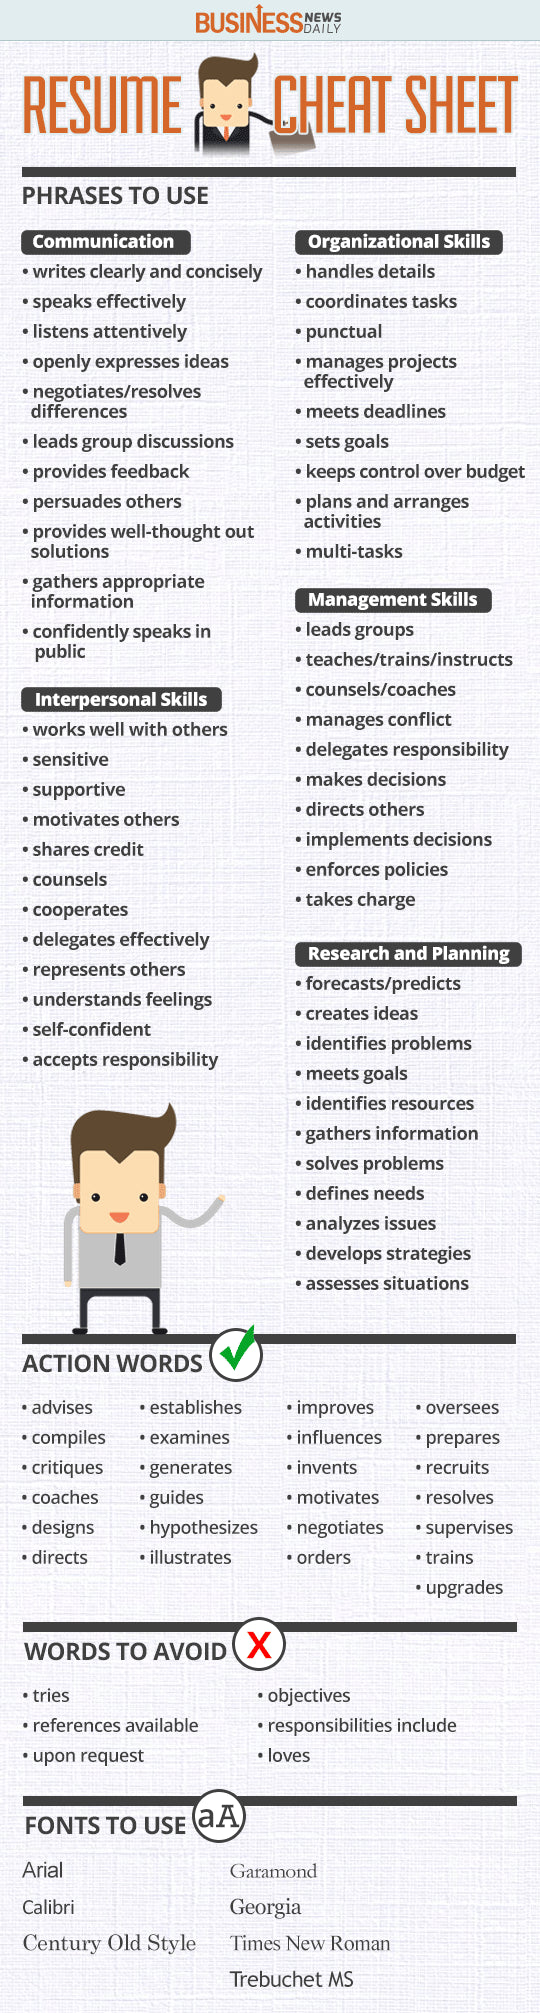 The Ultimate Resume Cheat Sheet